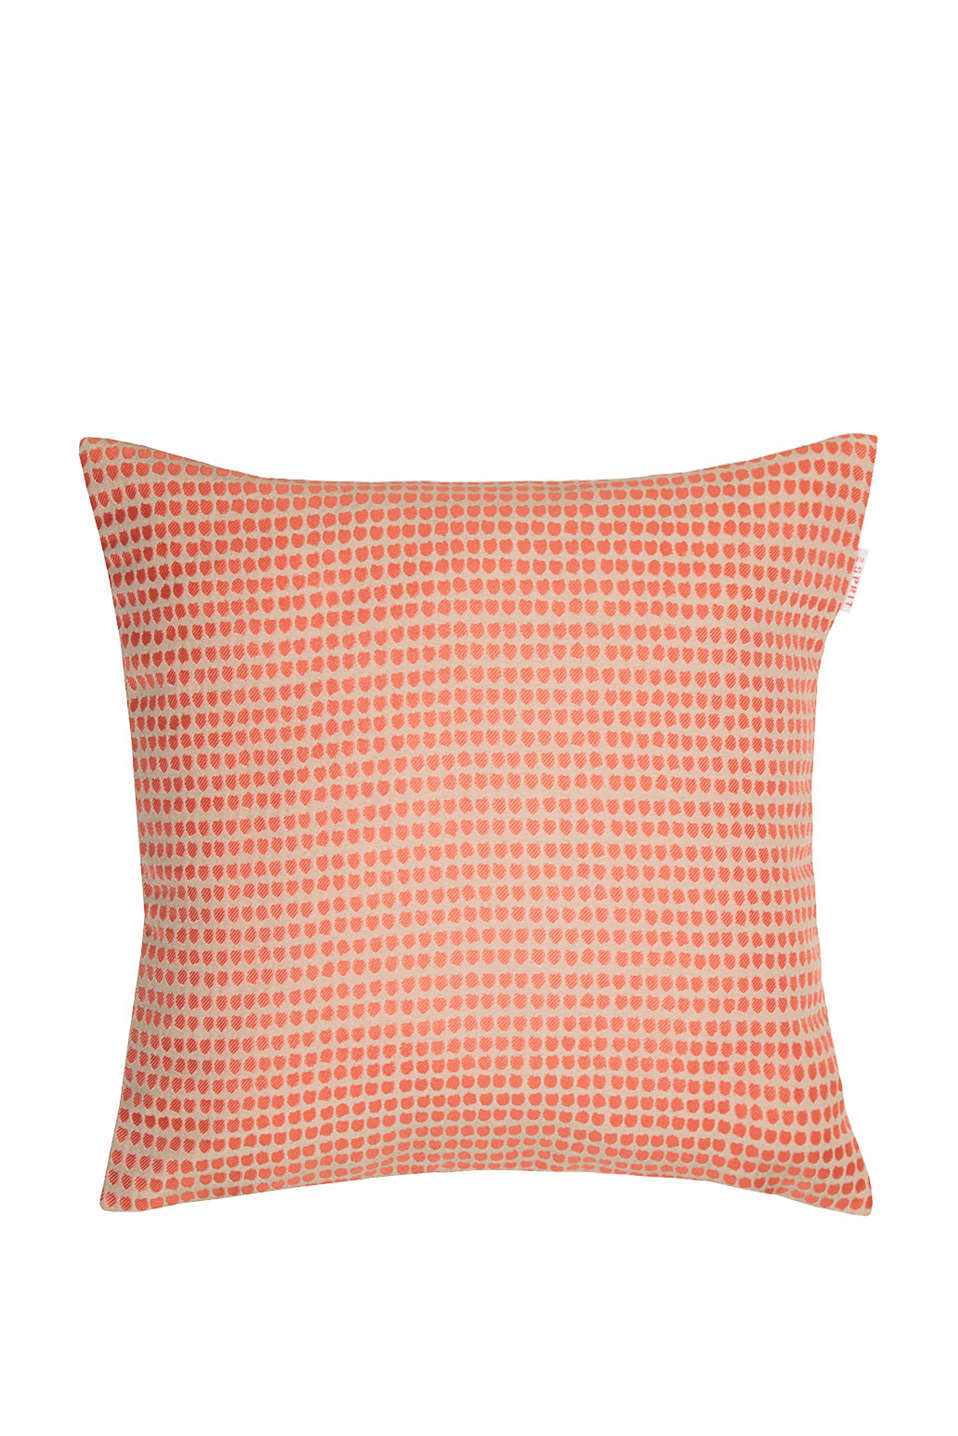 Esprit - Cushion cover with a woven dot pattern